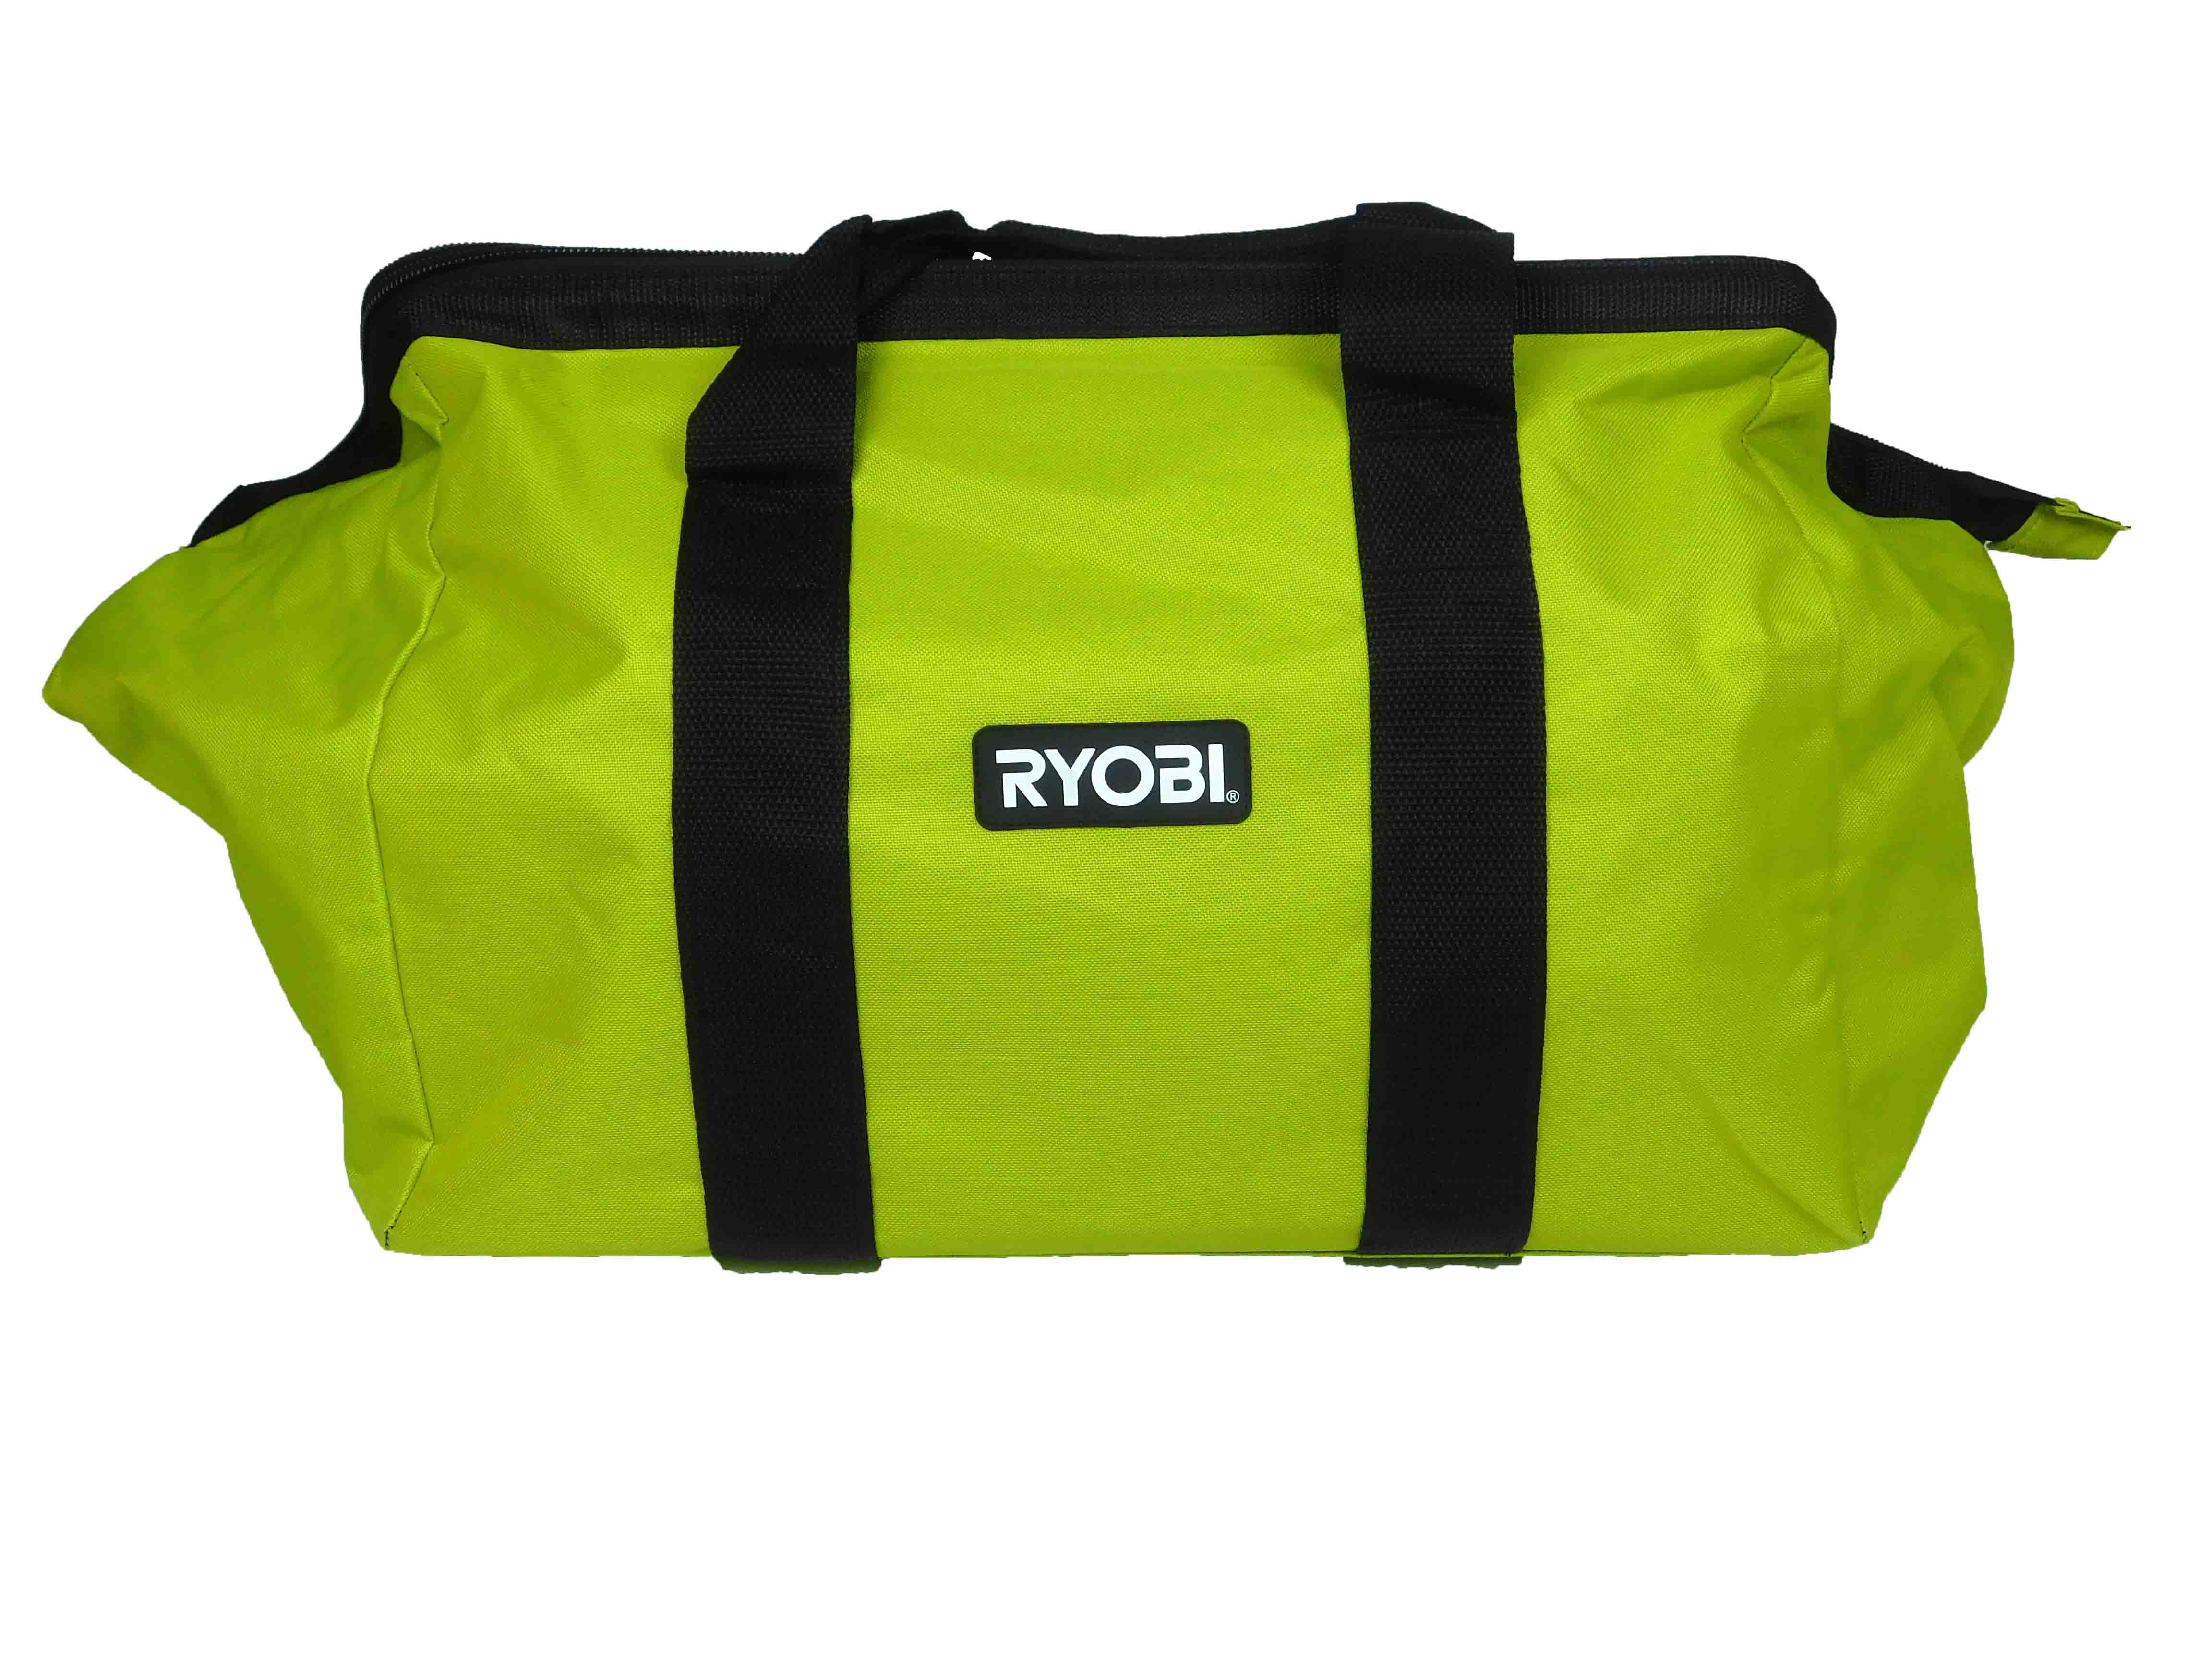 Ryobi-Contractors-Canvas-Wide-Mouth-Tool-Bag-image-1